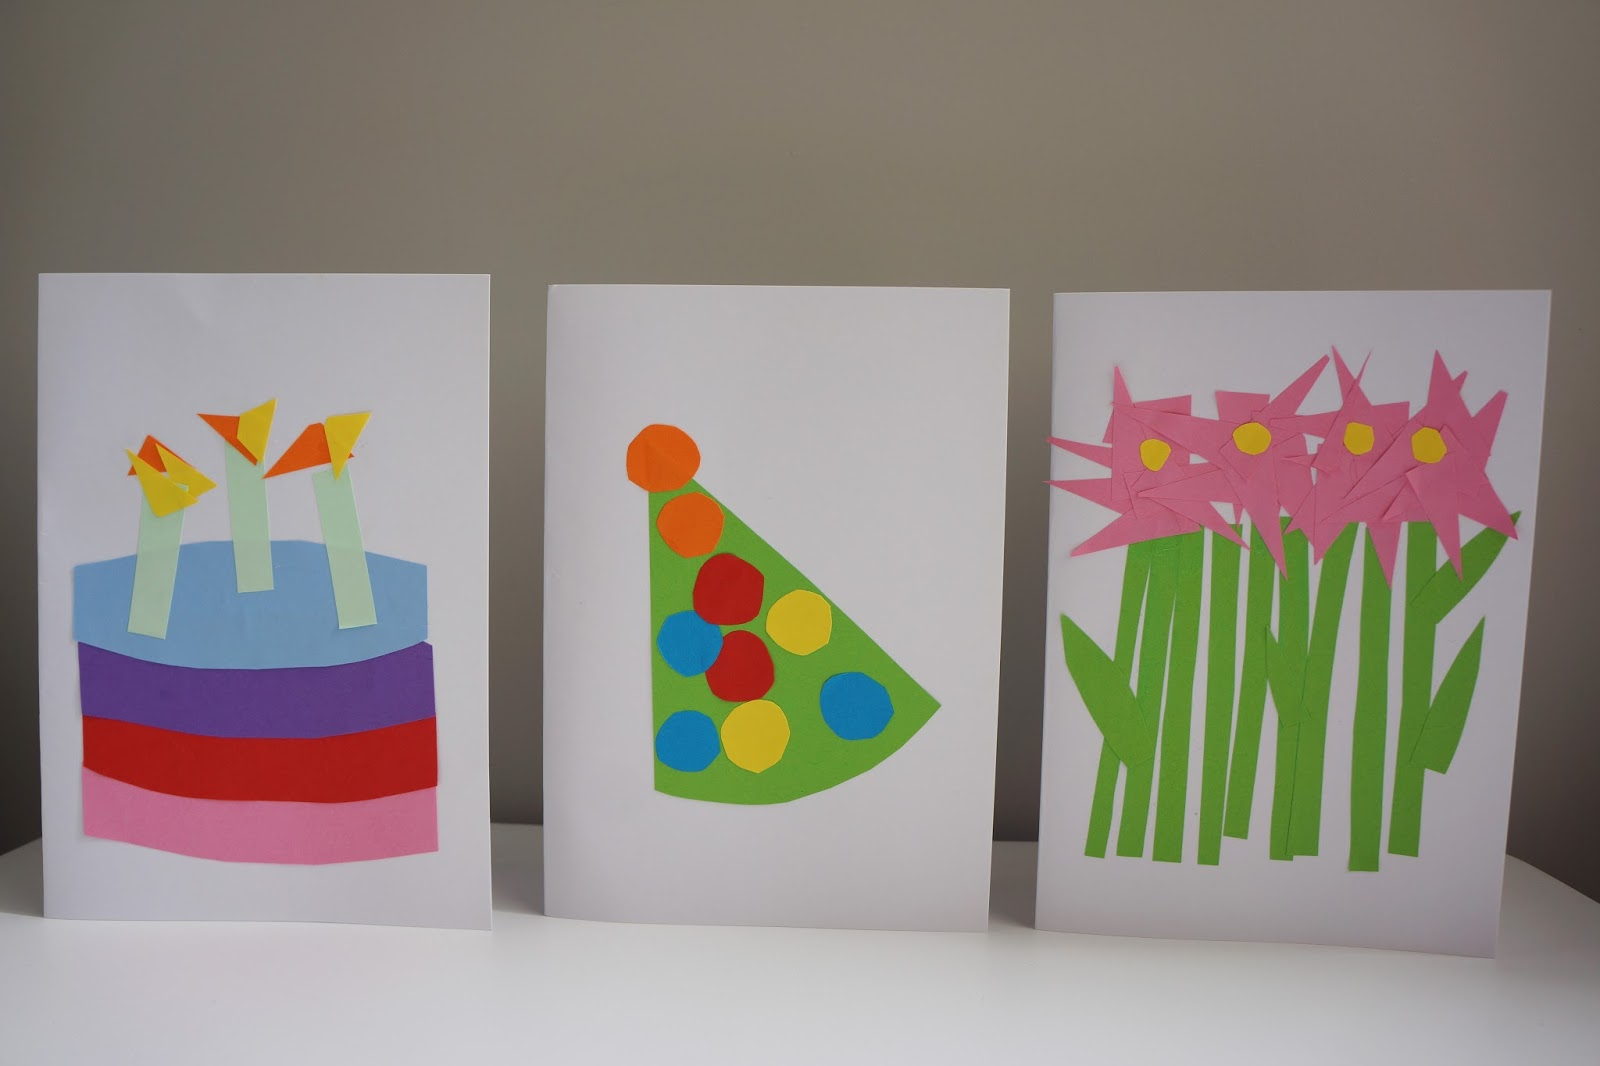 Birthday Card Handmade Ideas How To 3 Easy Birthday Card Crafts To Do With Toddlers Wave To Mummy